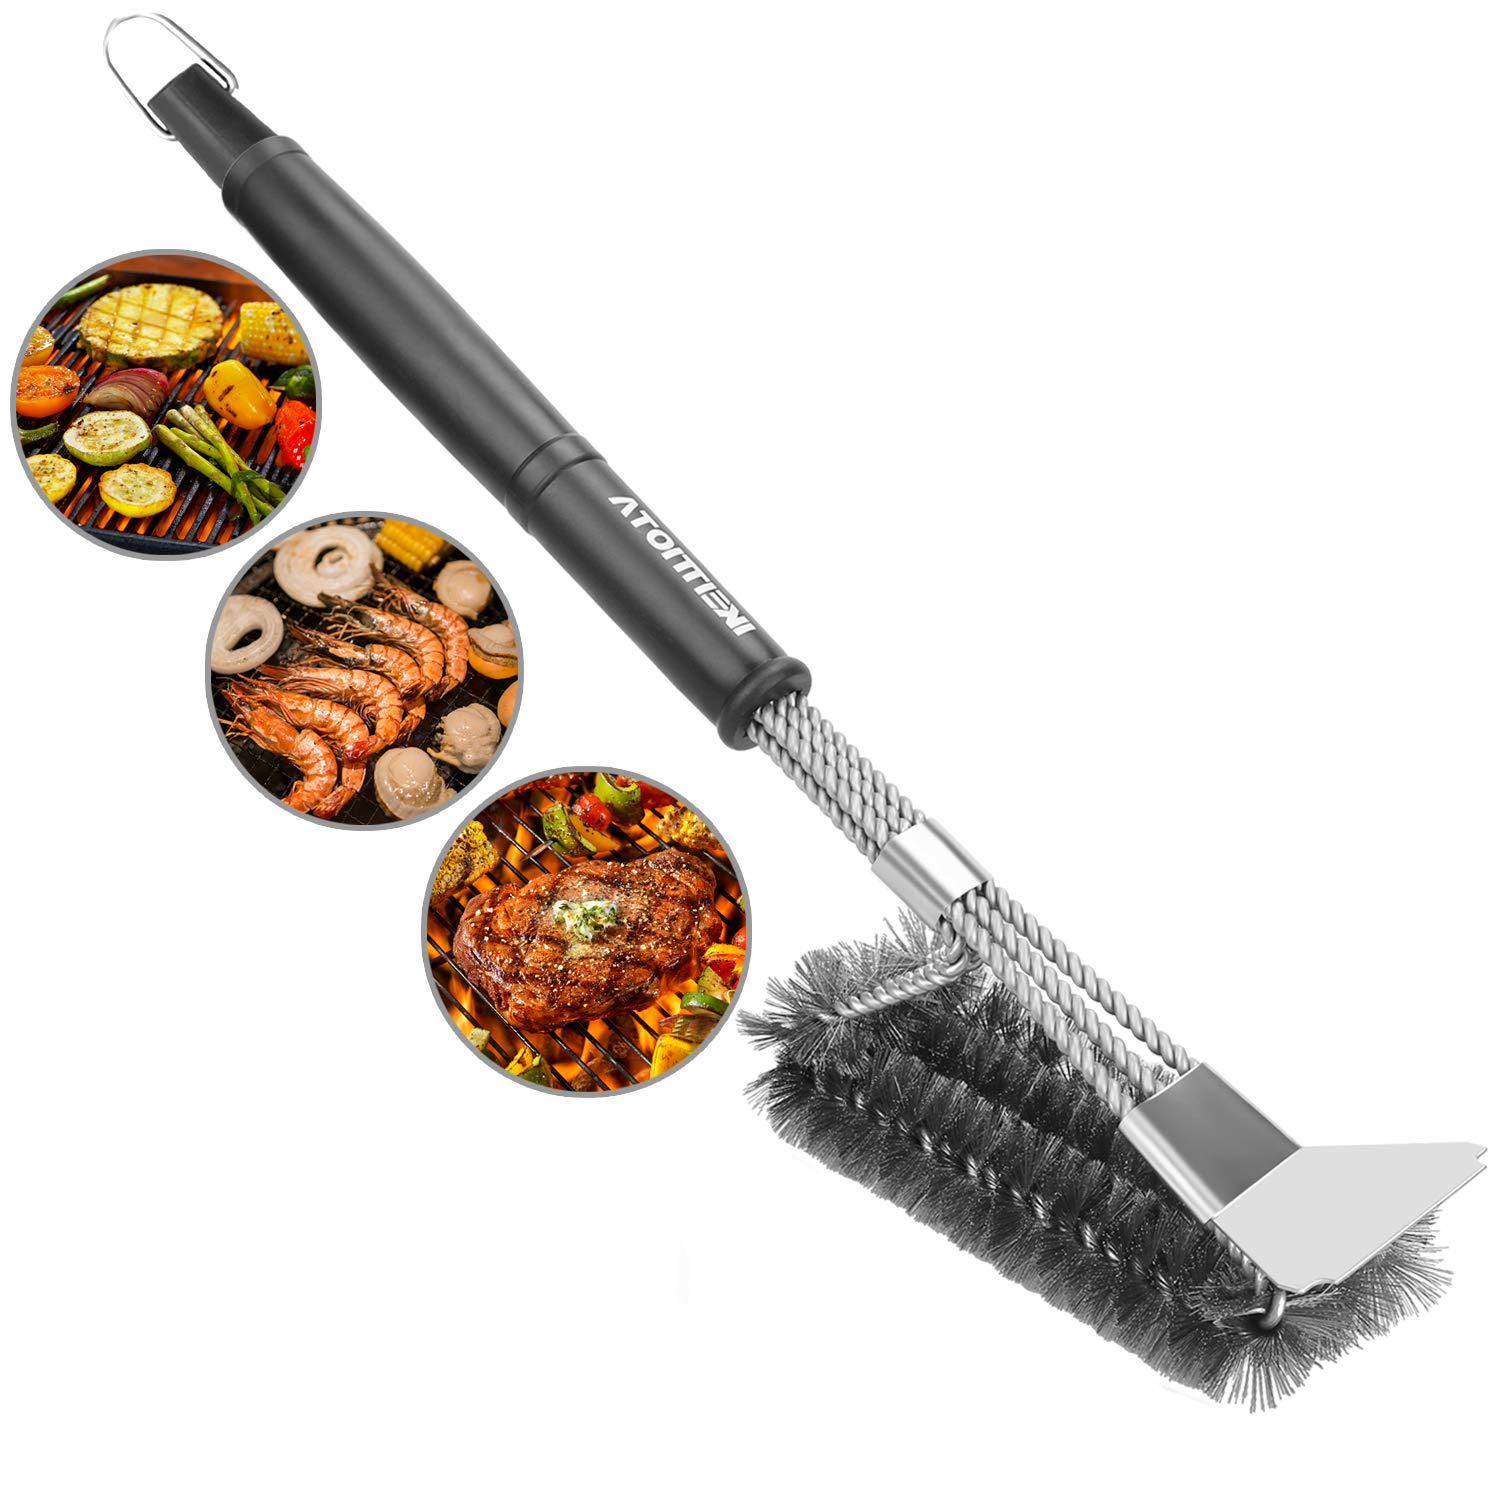 "BBQ Grill Brush Strong Scraper, 3-in-1 Stainless Steel Bristle, 18"" Brush Handle with Durable Twisted Wires for Effortless Cleaning, Best Alternative Gift for people love Barbecues IKEITTIOTA"